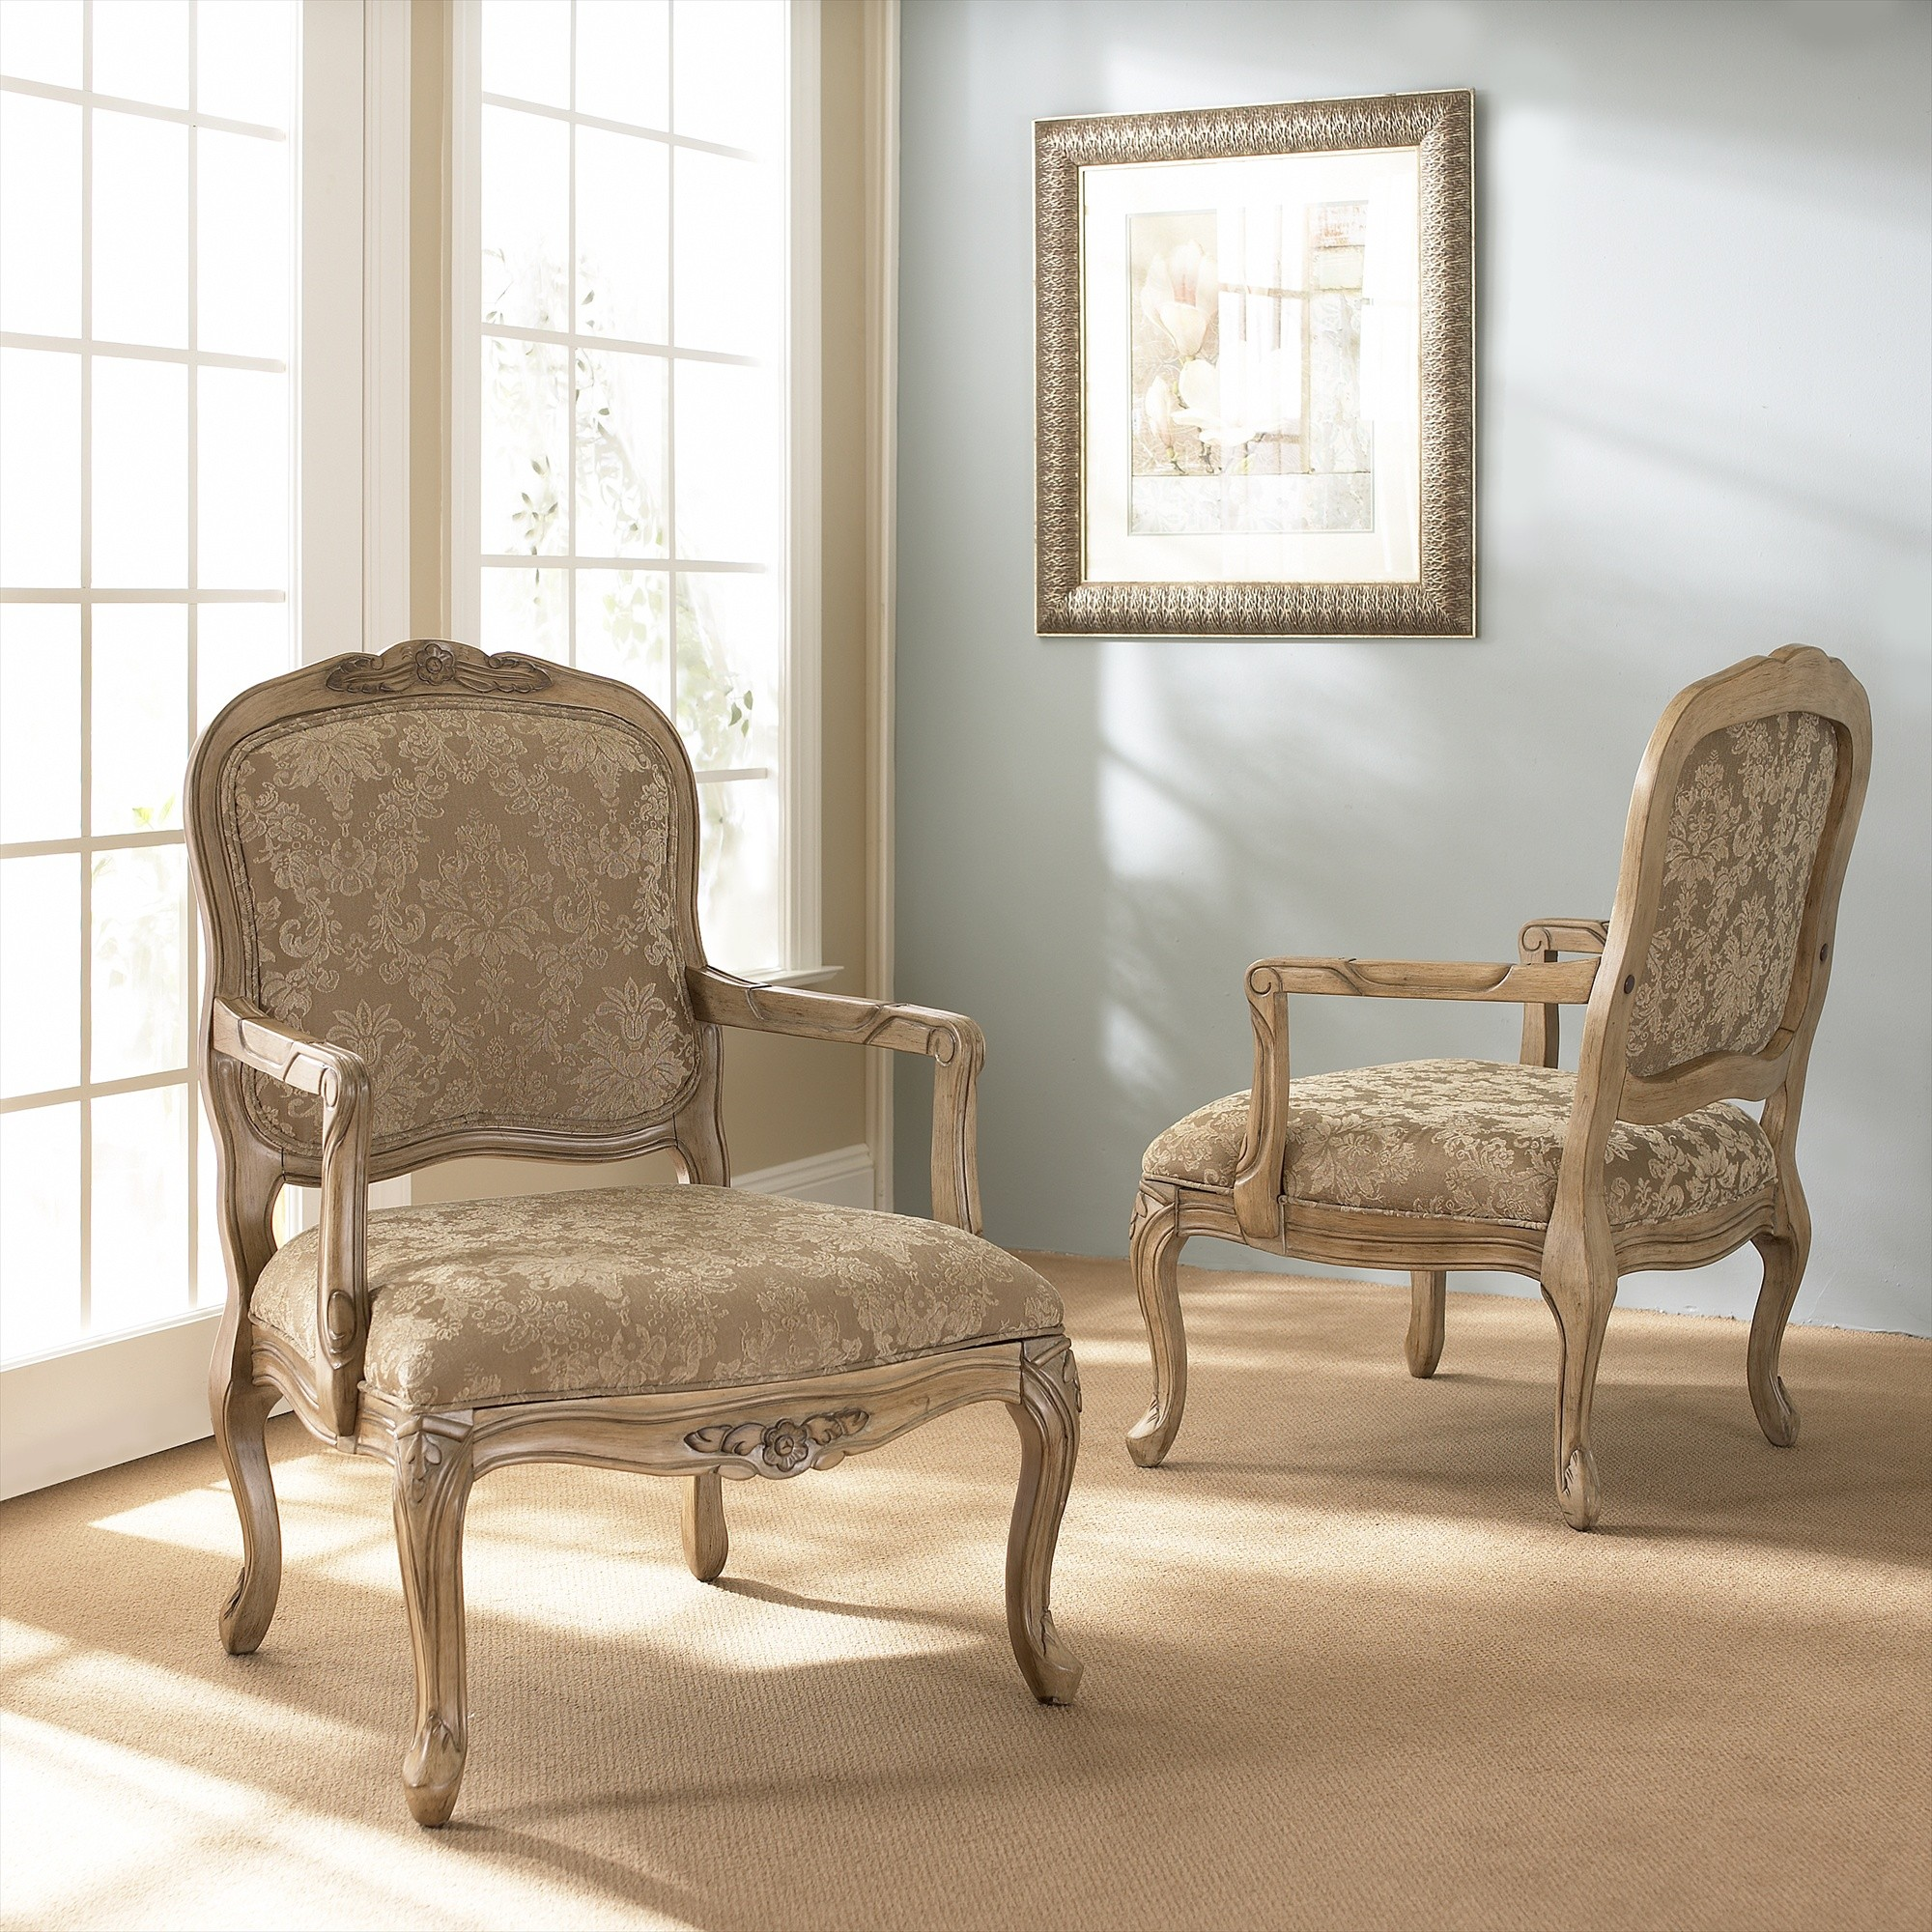 living chairs room accent chairs in living dining classic chair styles NADXYQS